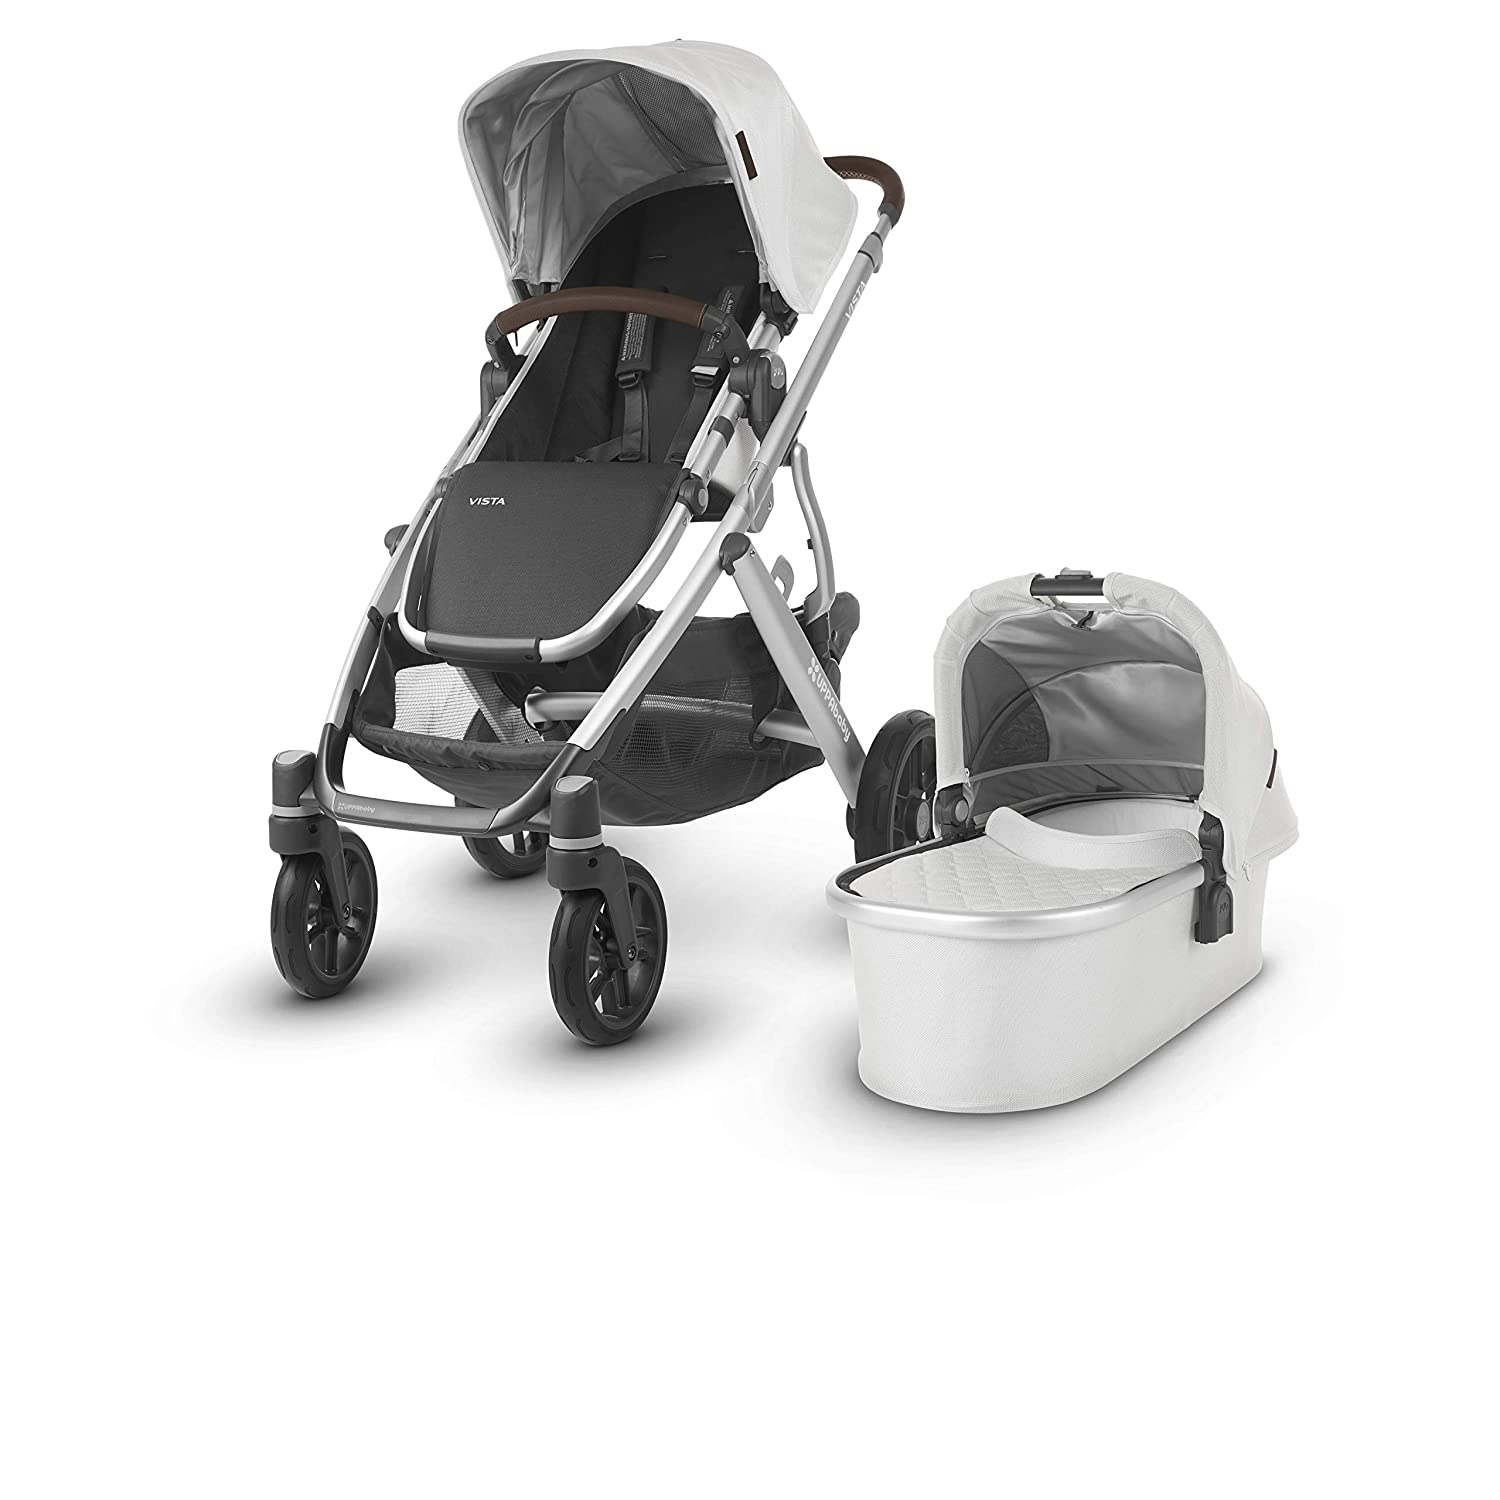 Vista Stroller with Infant Car Seat